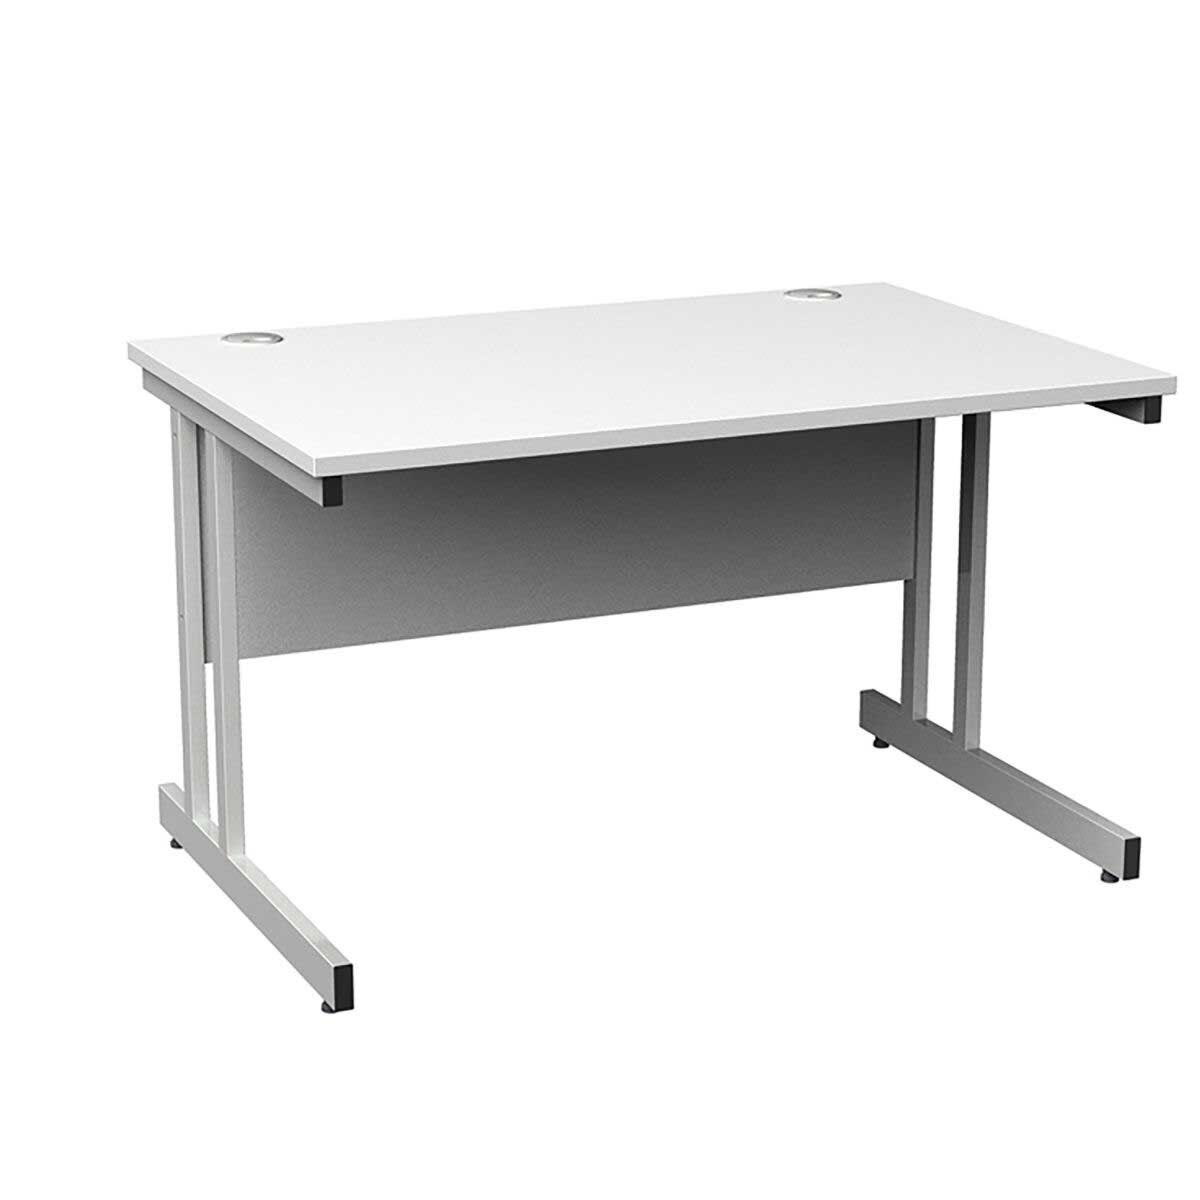 Momento Rectangular Cantilever Framed Desk 1200mm